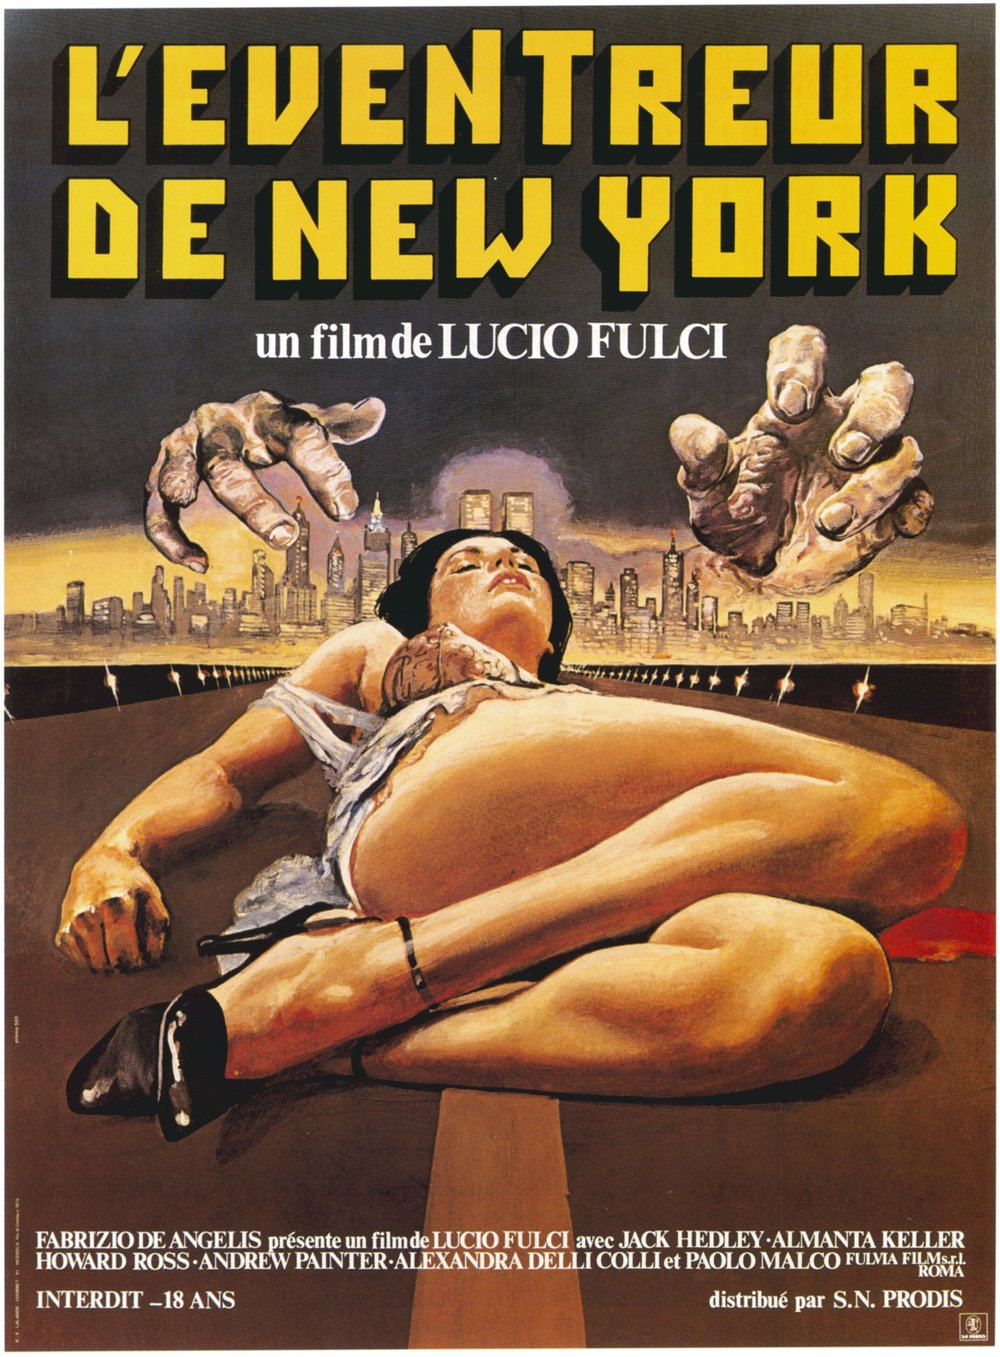 new_york_ripper_poster_02.jpg